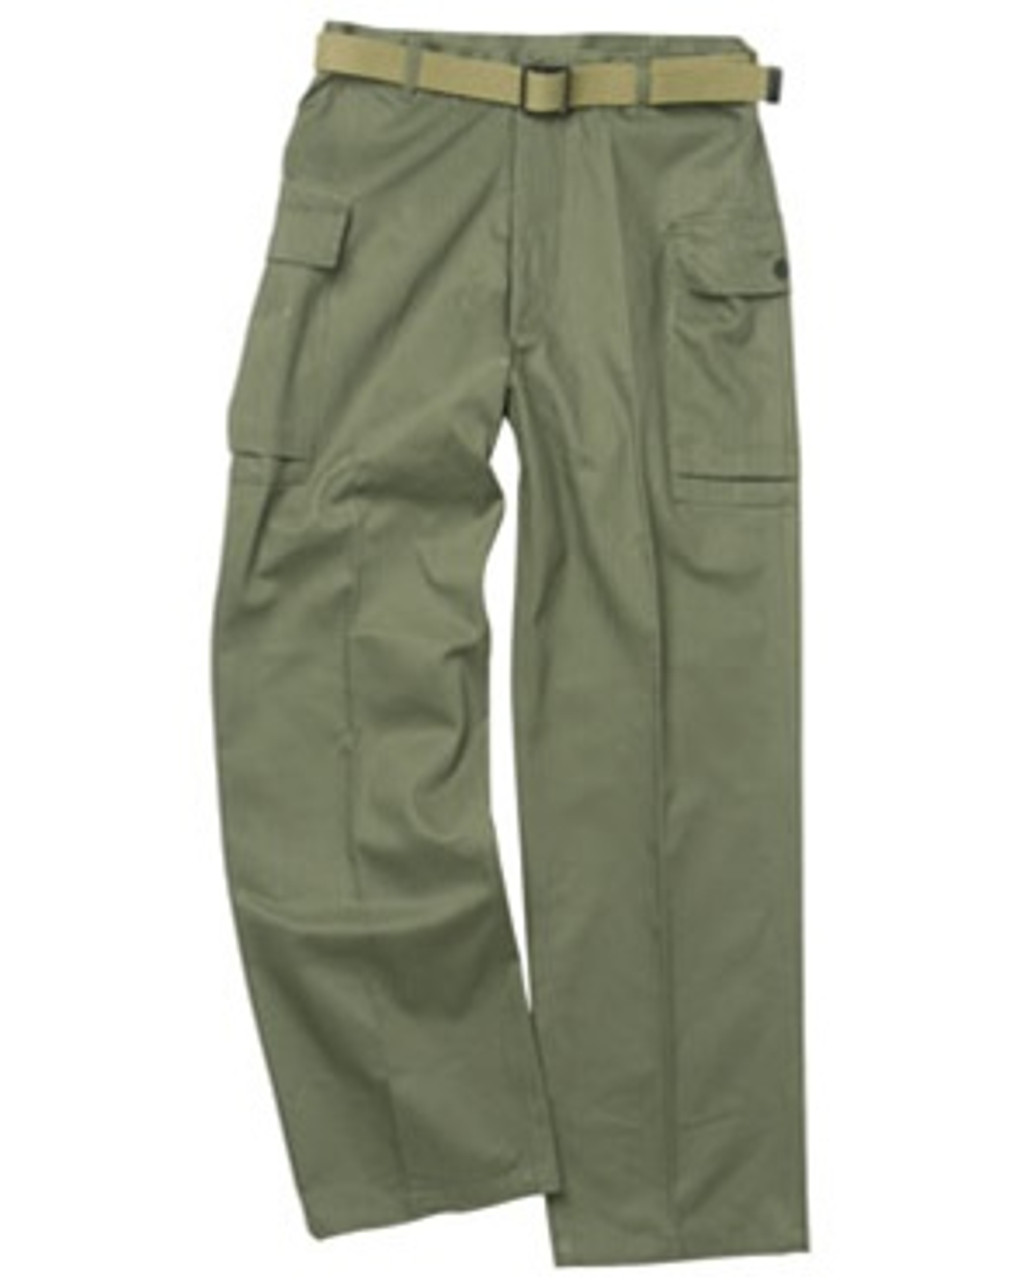 GI HBT Trousers from Hessen Antique